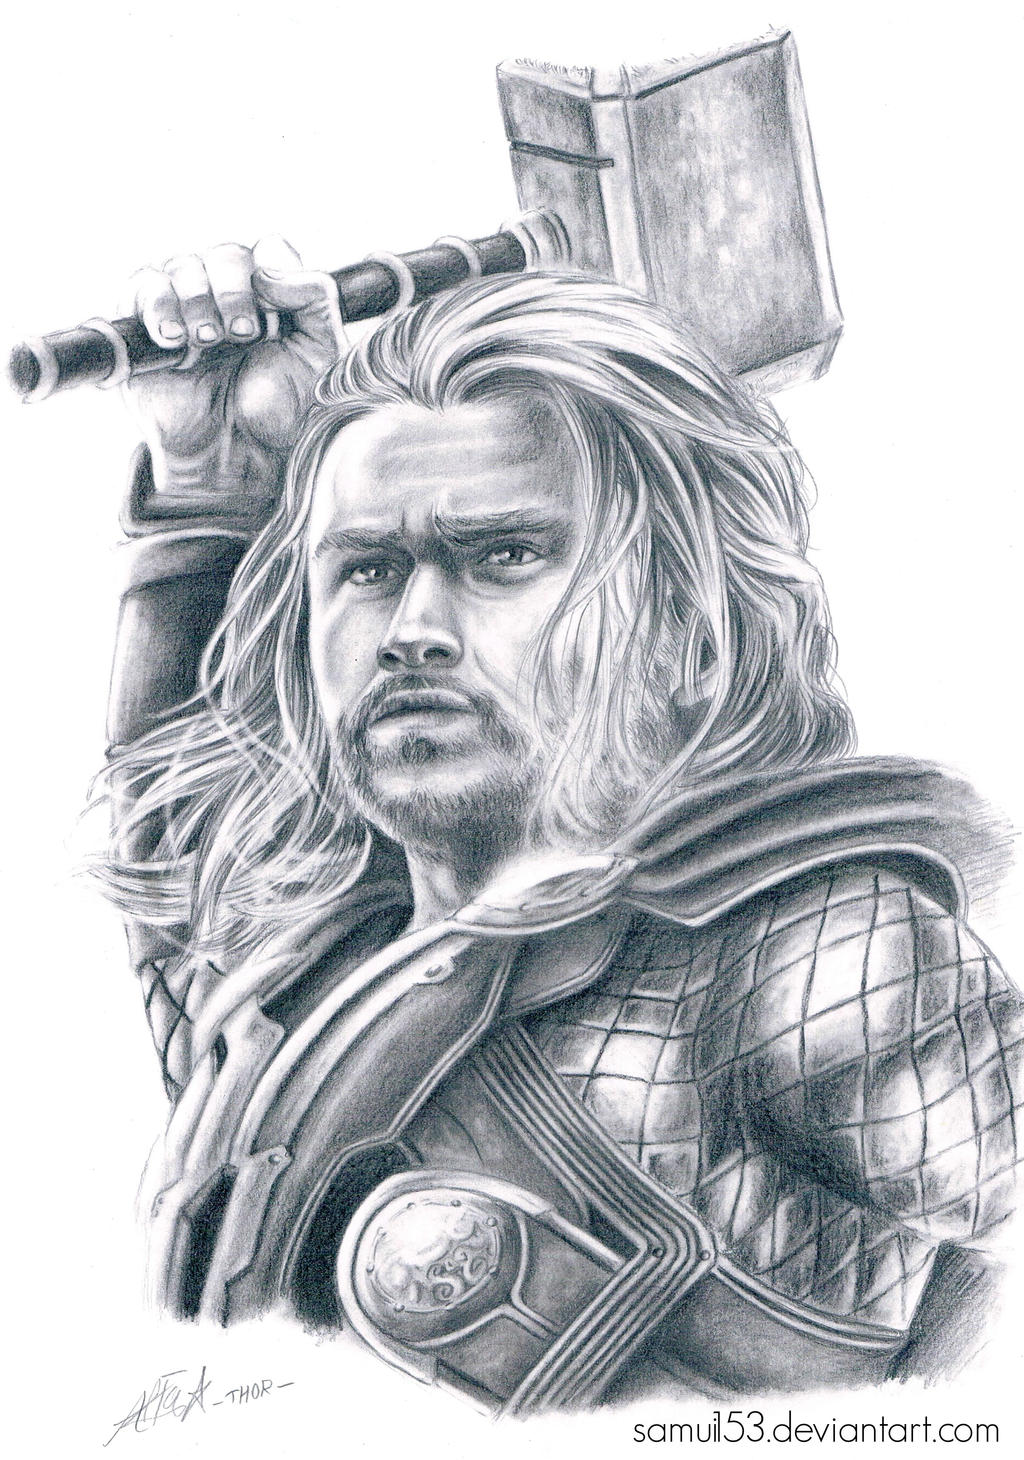 Avengers Age Of Ultron By Iloegbunam On Deviantart: Thor By Samui153 On DeviantArt